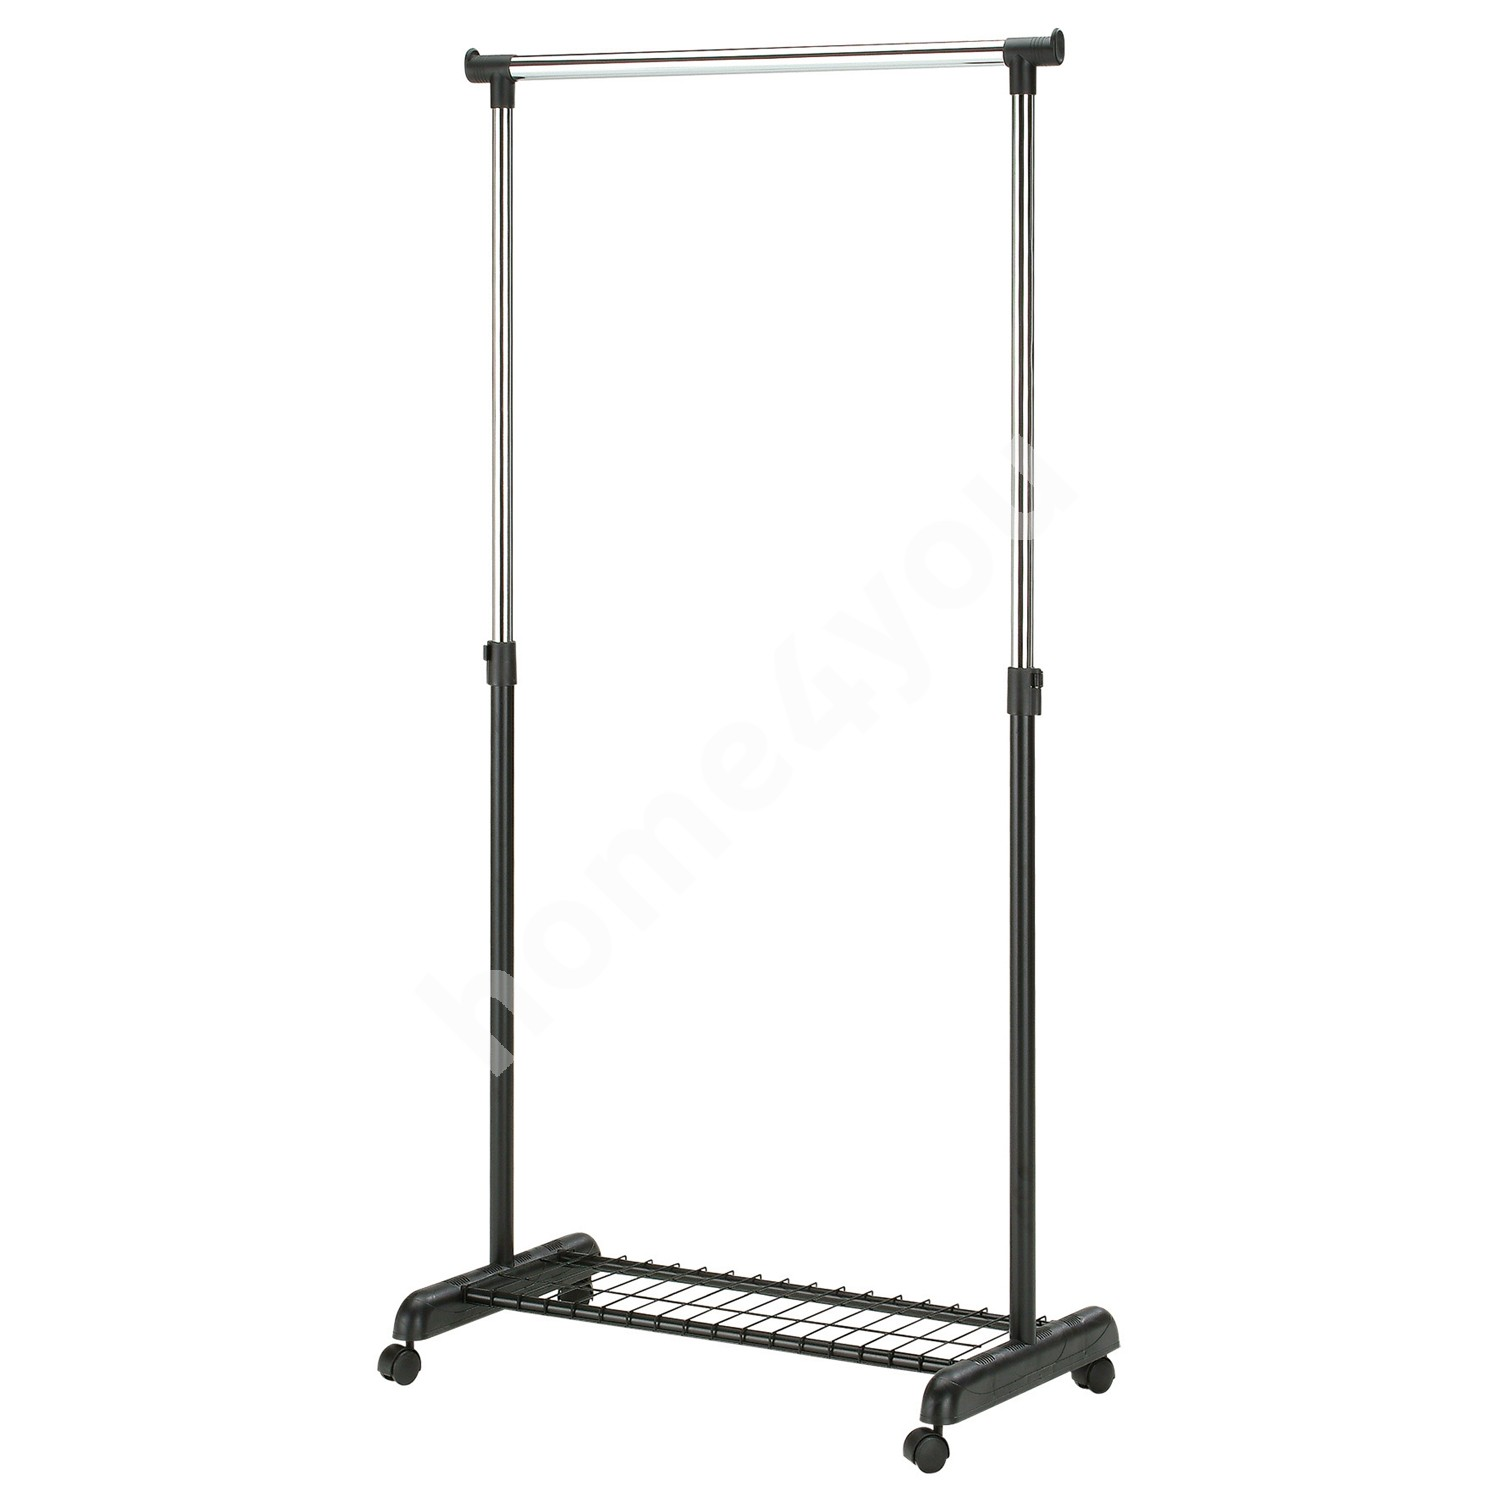 Clothes hanger FRANK with shoe rack on wheels 83x43x93,5-168cm, color: black-chrome